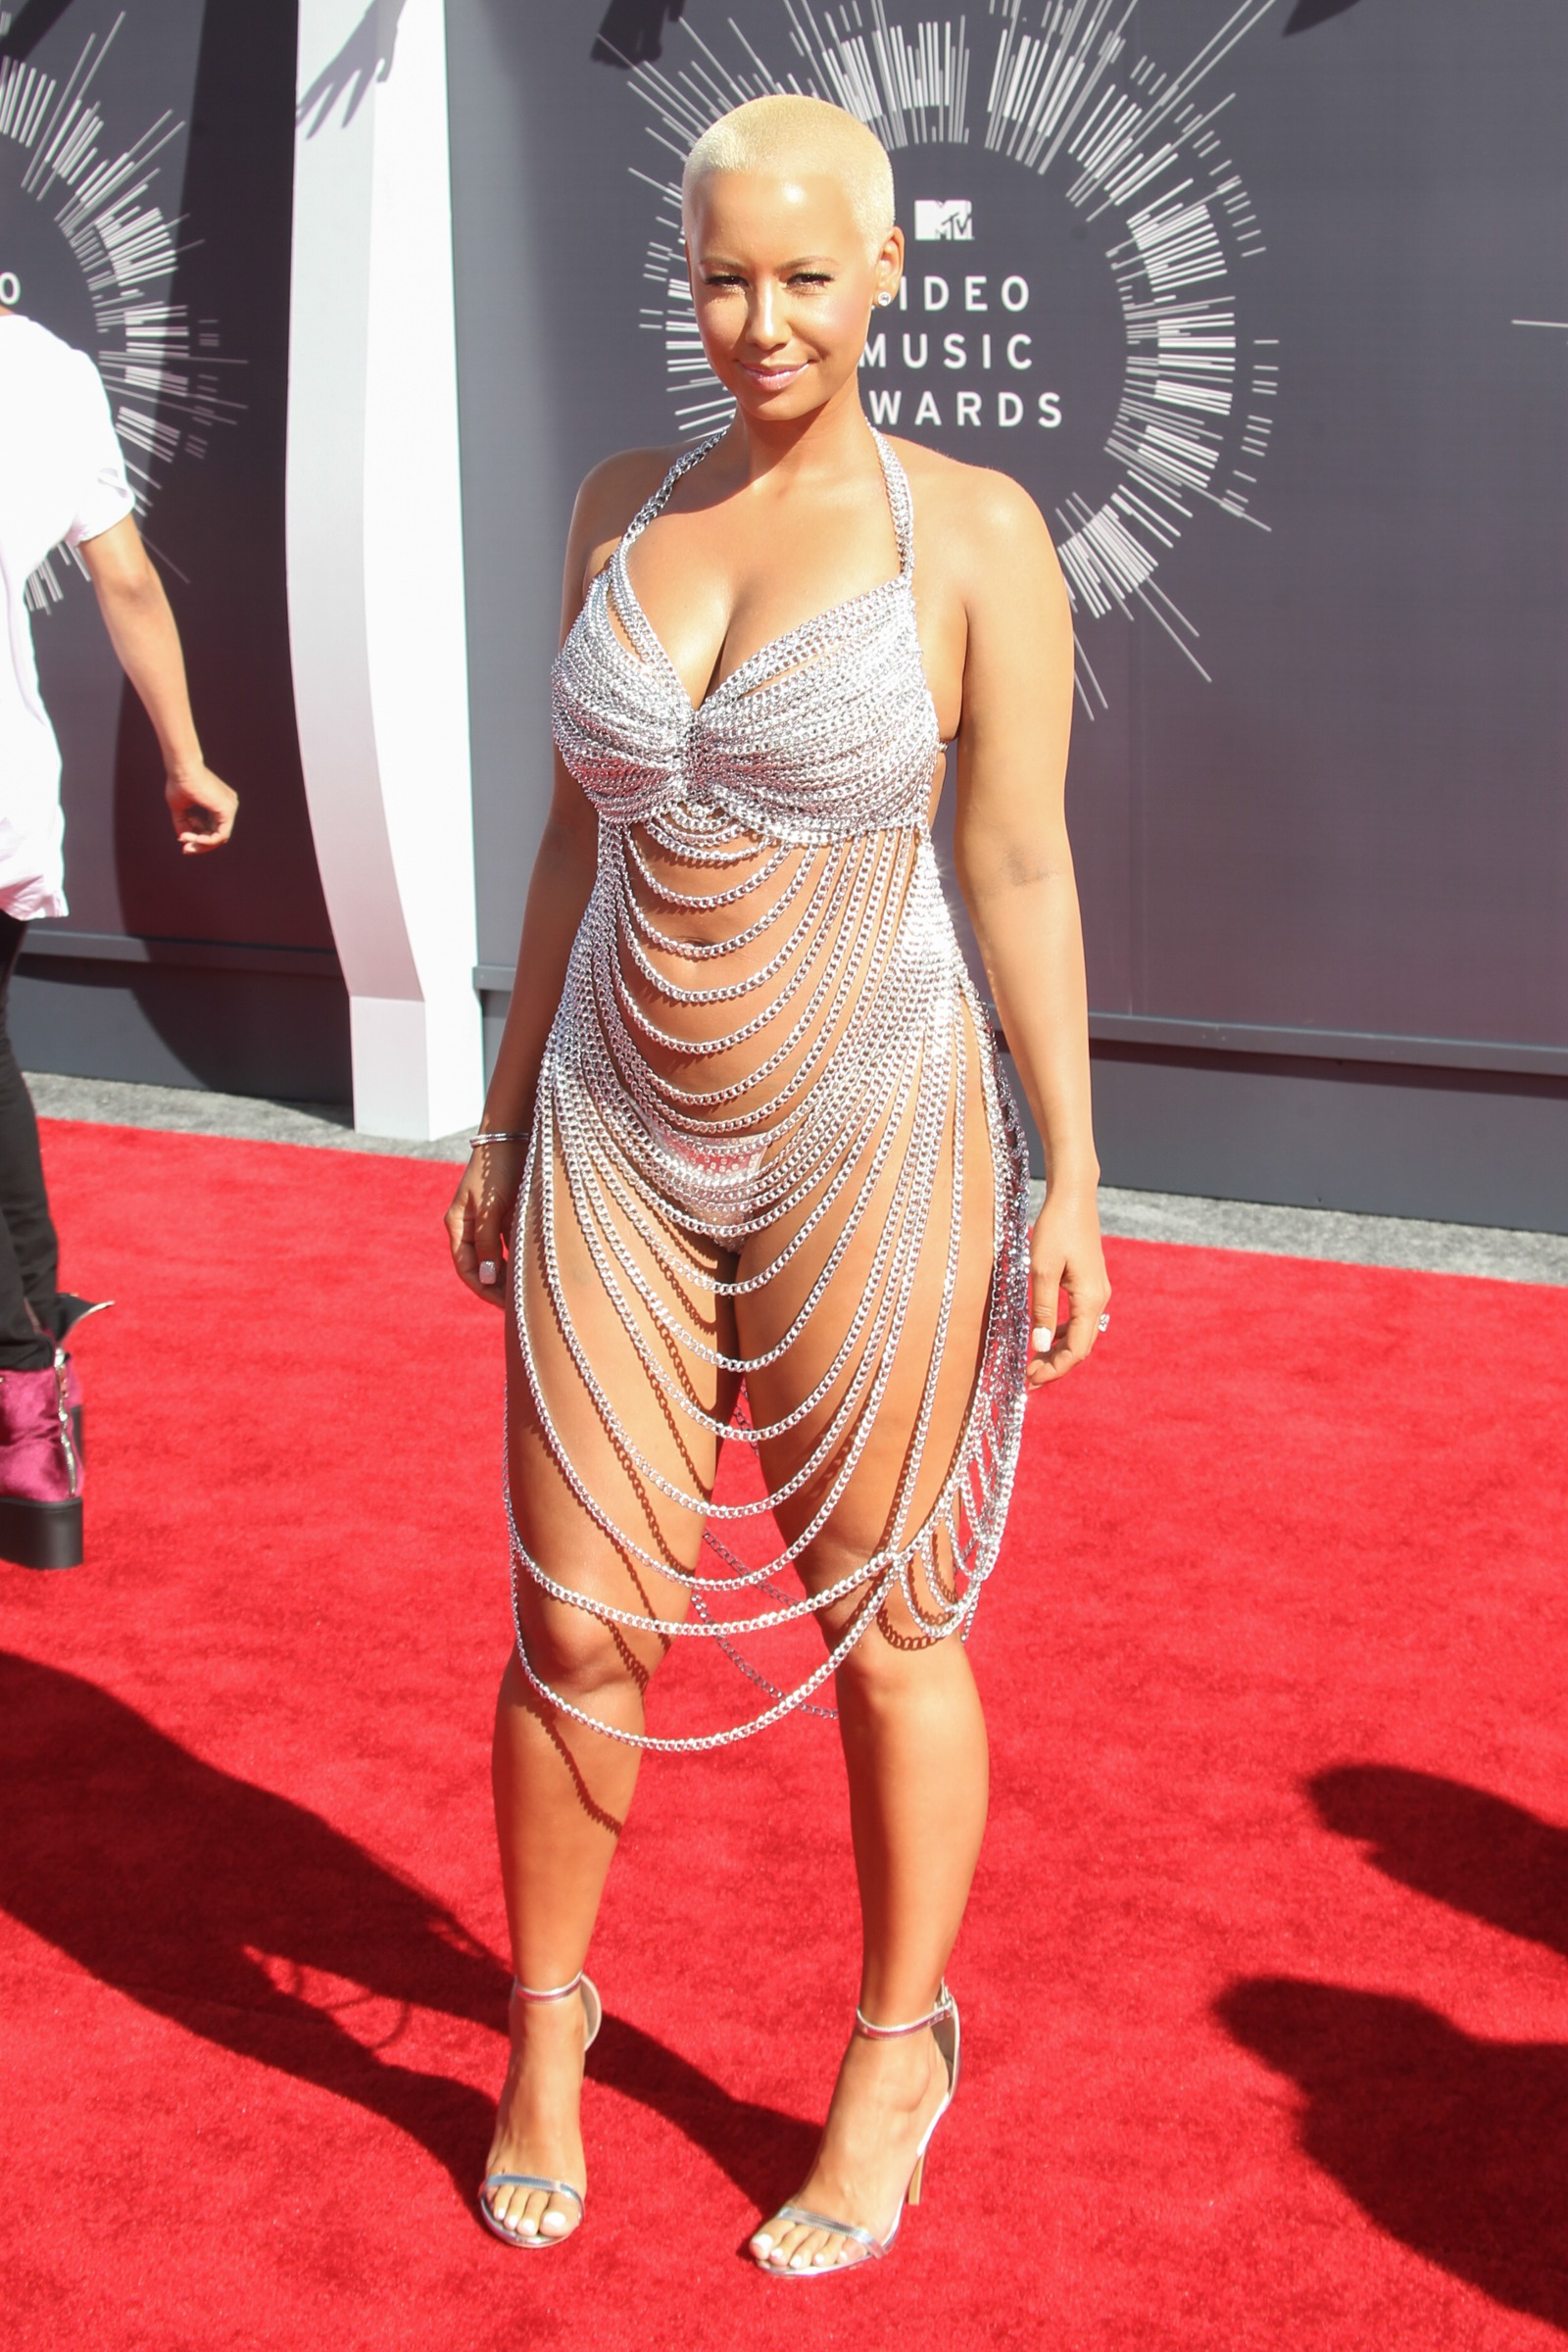 Is Taylor Swift's gaudy bodysuit this year's worst-dressed at the VMAs?